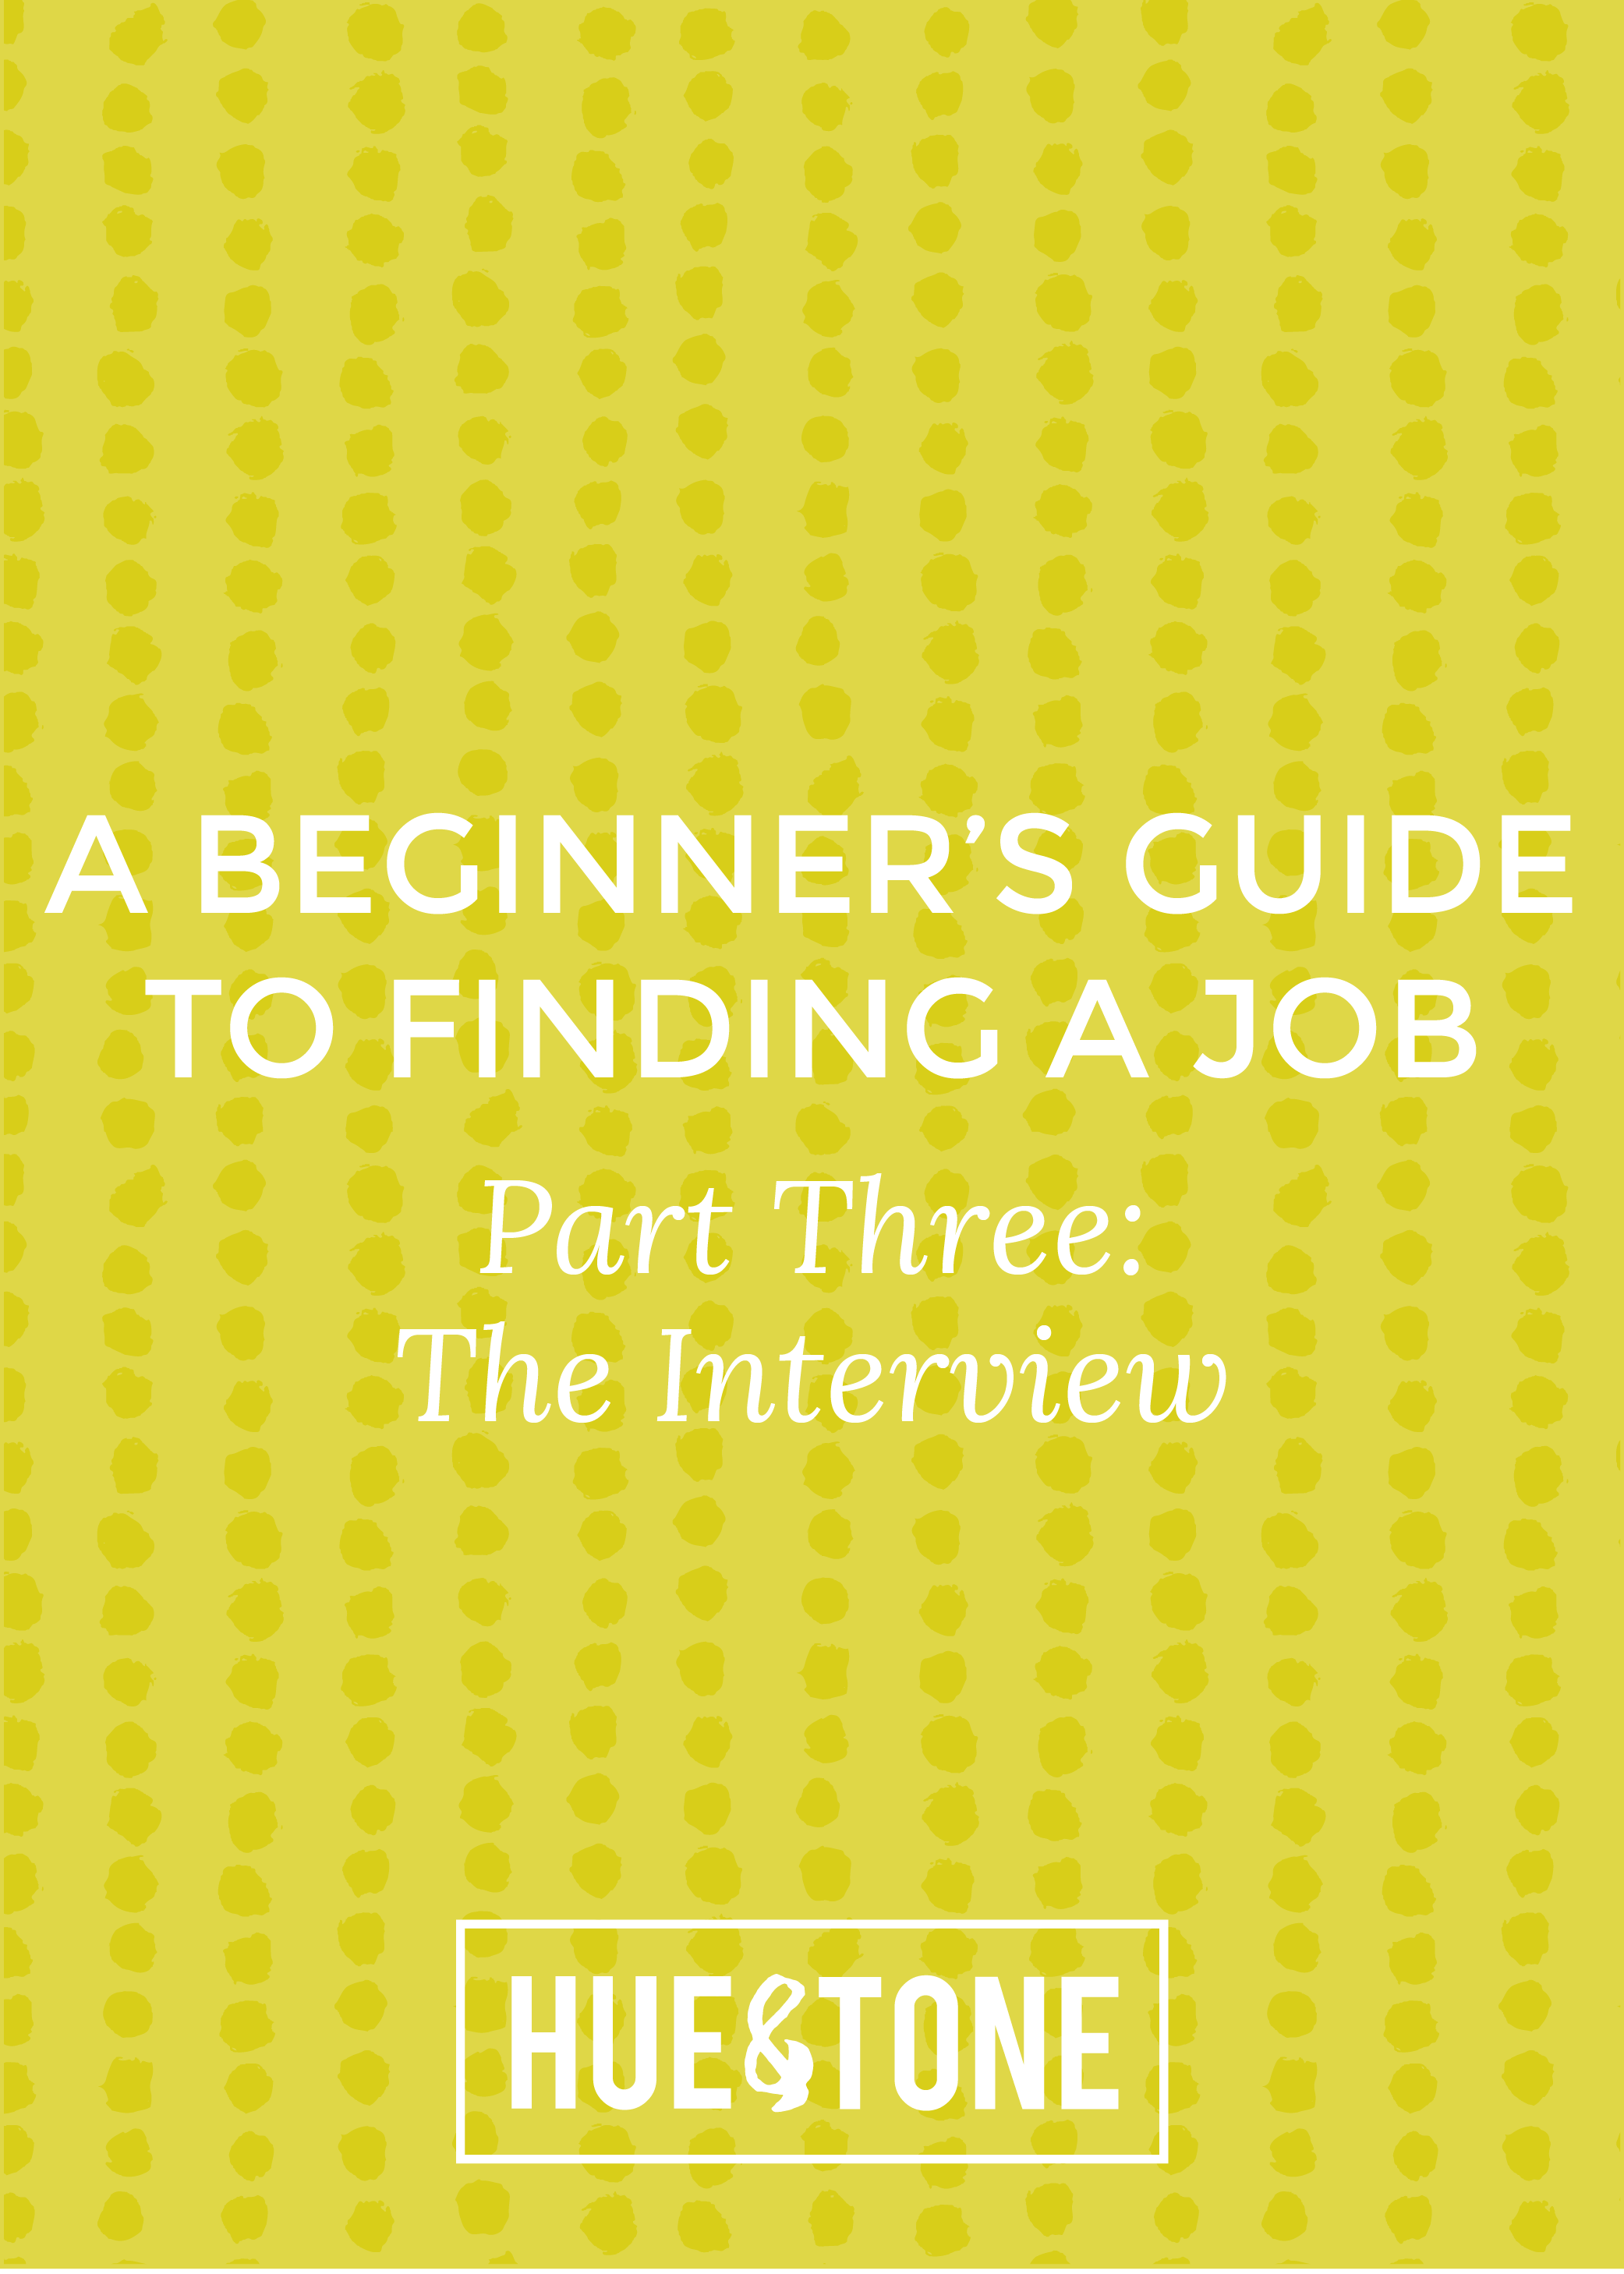 Hue & Tone Creative - A Beginner's Guide to Finding a Job